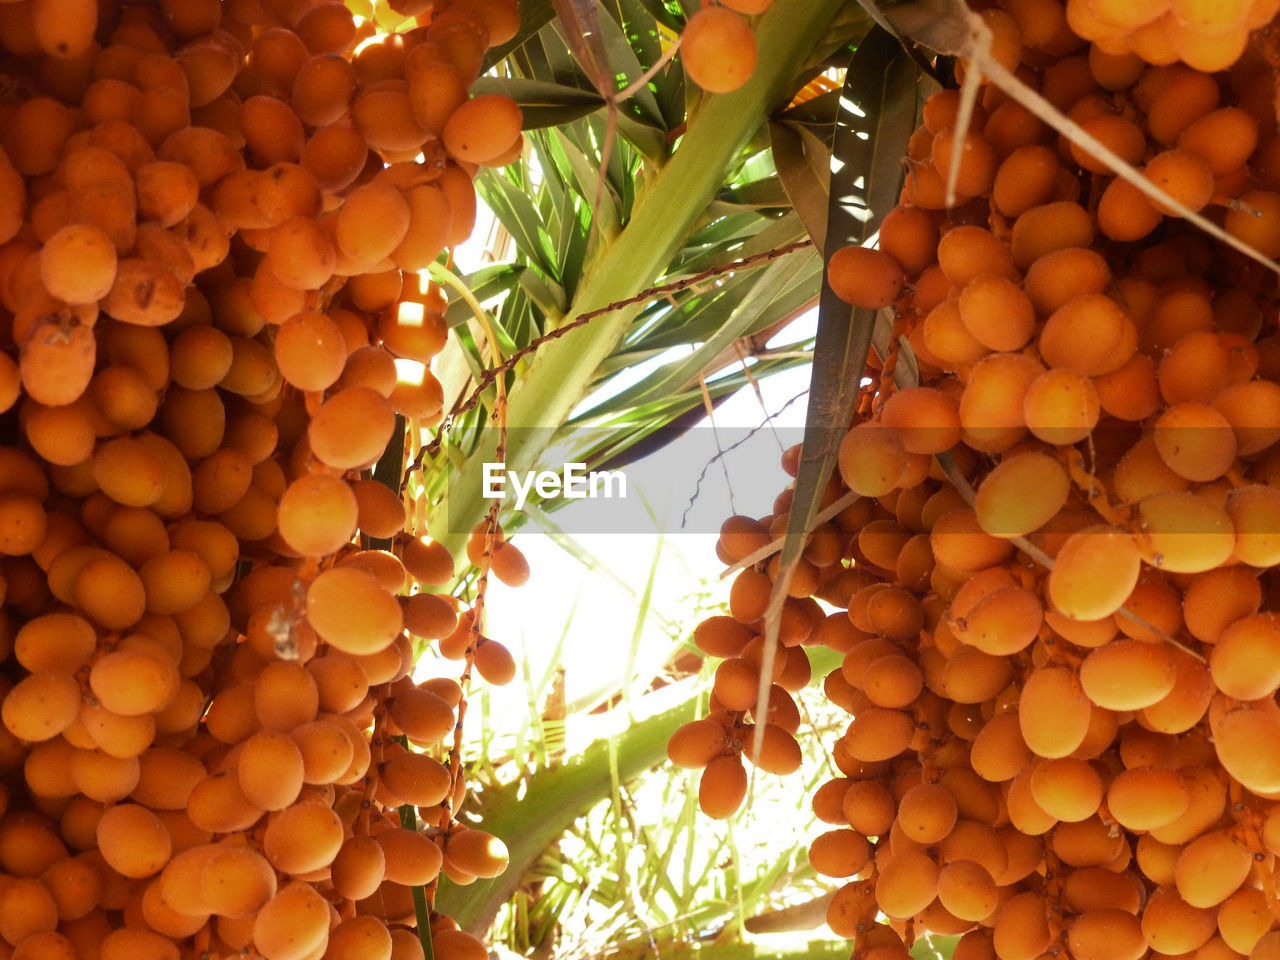 Low angle view of fruits hanging outdoors